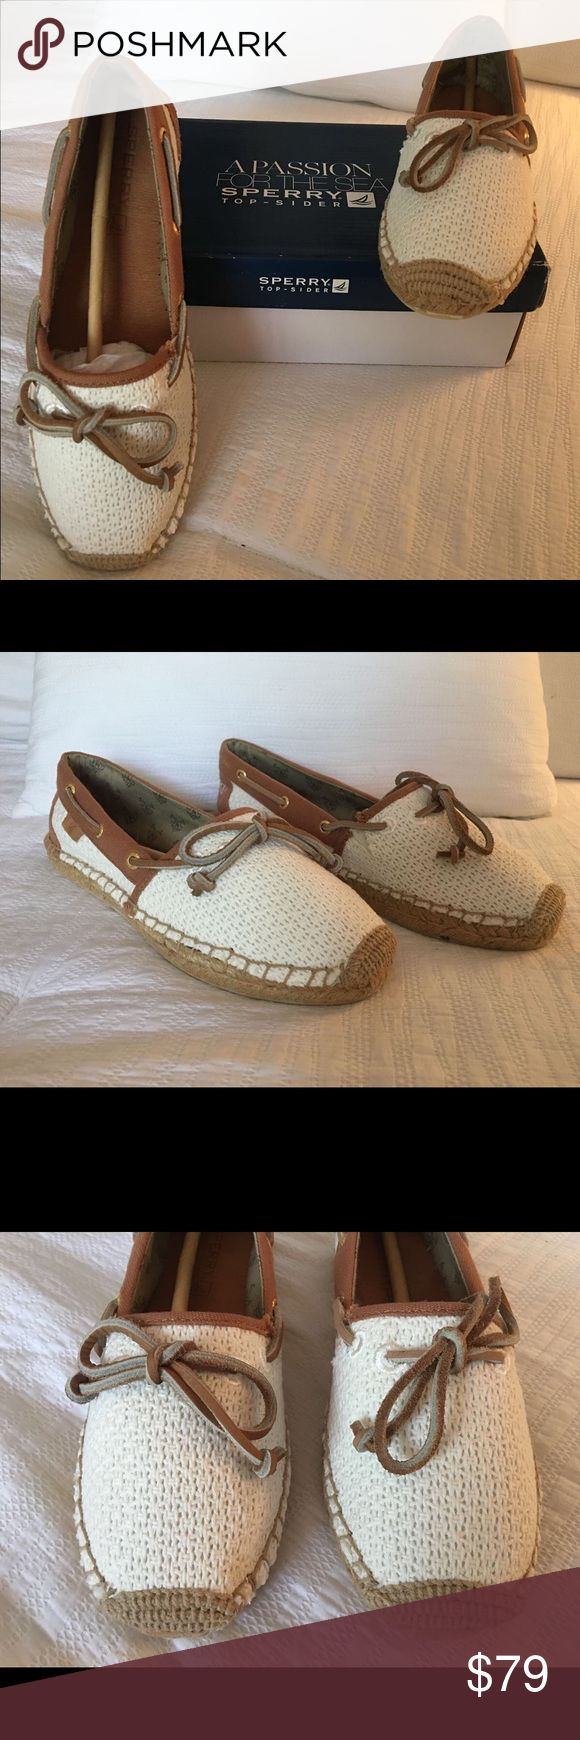 New Sperry Top-Sider Katama Open Cotton Mesh Shoes ⚓️ This beautiful boat shoes are made in a natural ivory color. The box says 6 1/2 but the shoes runs one size down, so they run as size 5 1/2. I am size 6 1/2 in shoes and they didn't fit me even without socks; my sister is 5 1/2 and they fit her perfectly with and without socks! They are 💯% authentic and also new with tags and in their original box as seen on the photos. You are going to love them! ❤️ Sperry Top-Sider Shoes Moccasins